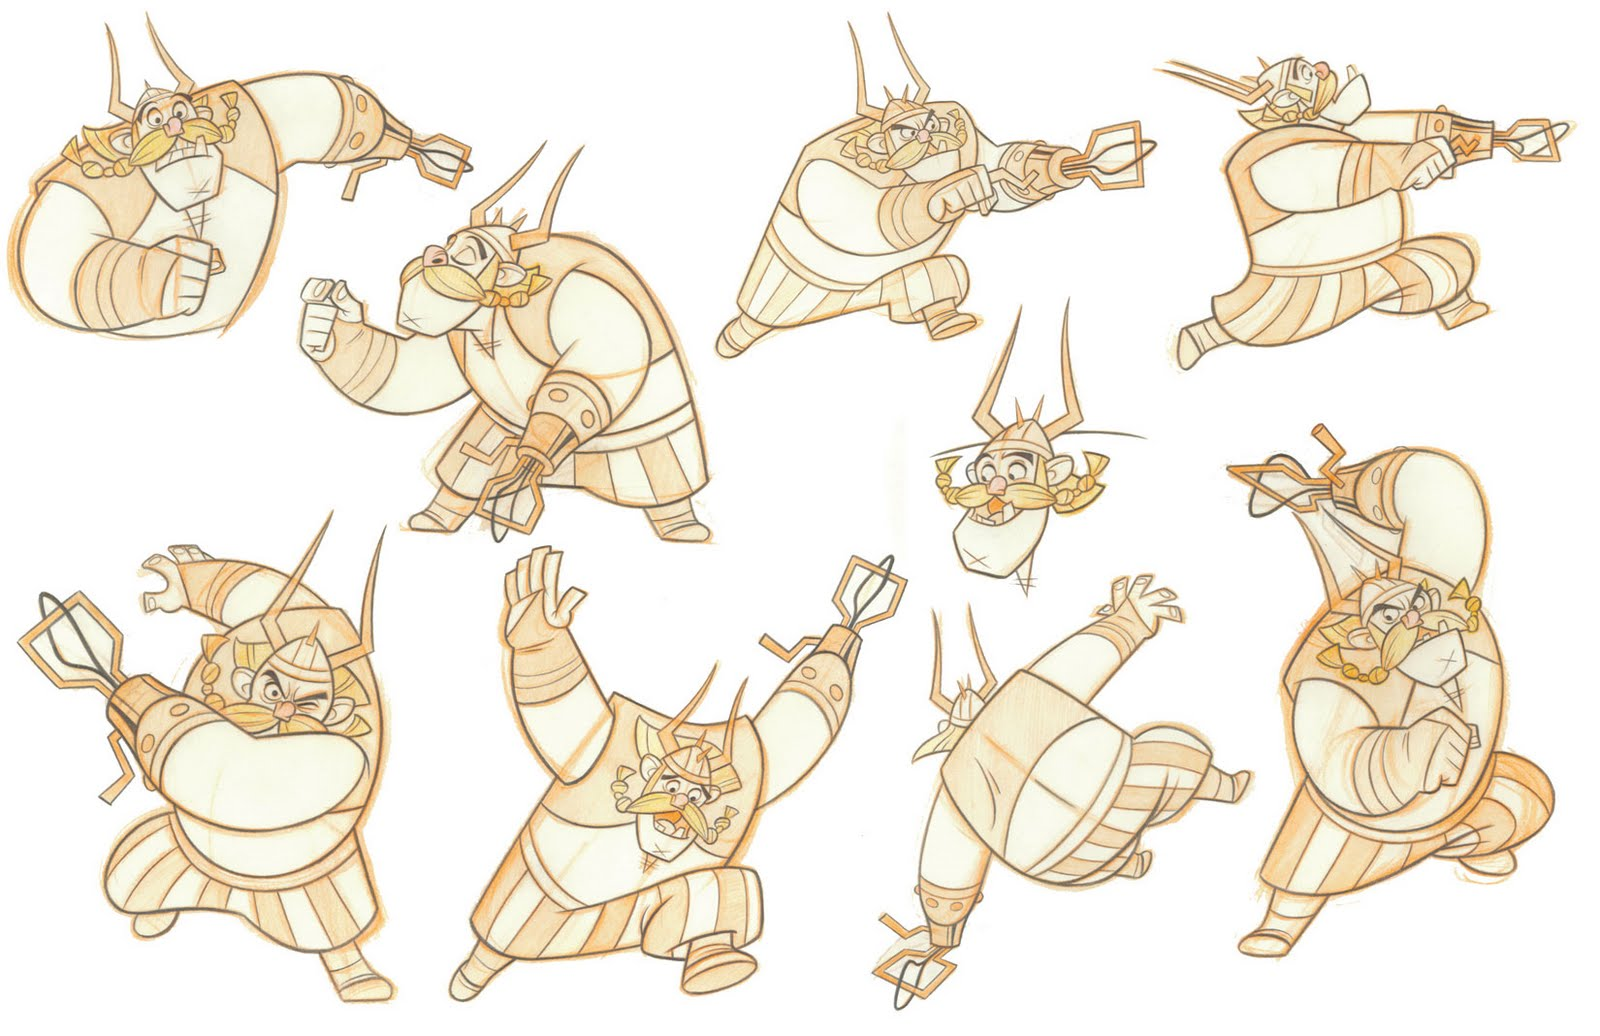 Character Design How To Train Your Dragon : Living lines library legend of the boneknapper dragon